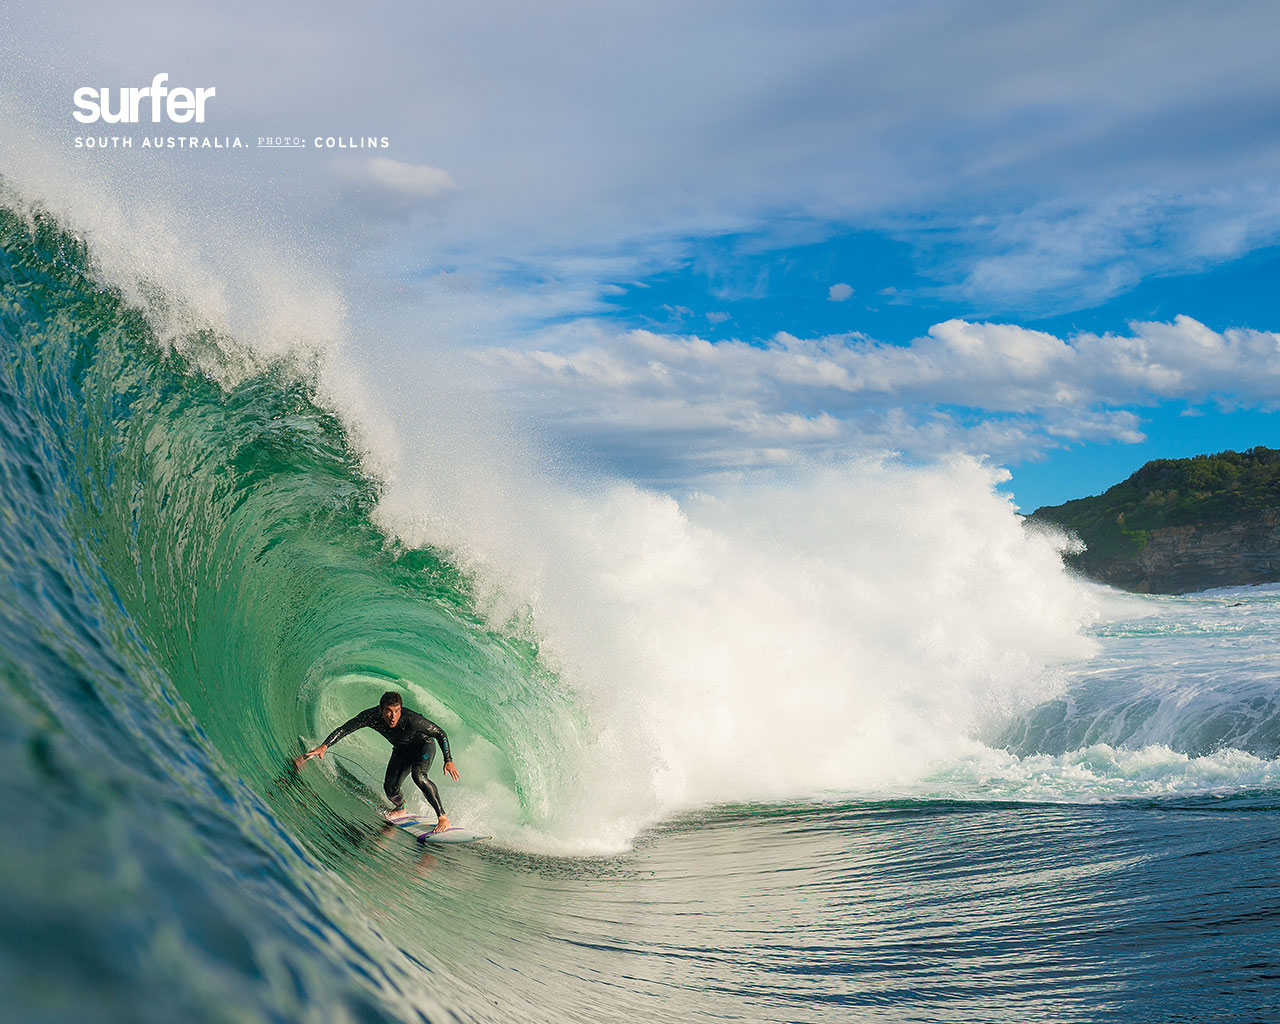 Wallpapers SURFER Magazine 1280x1024